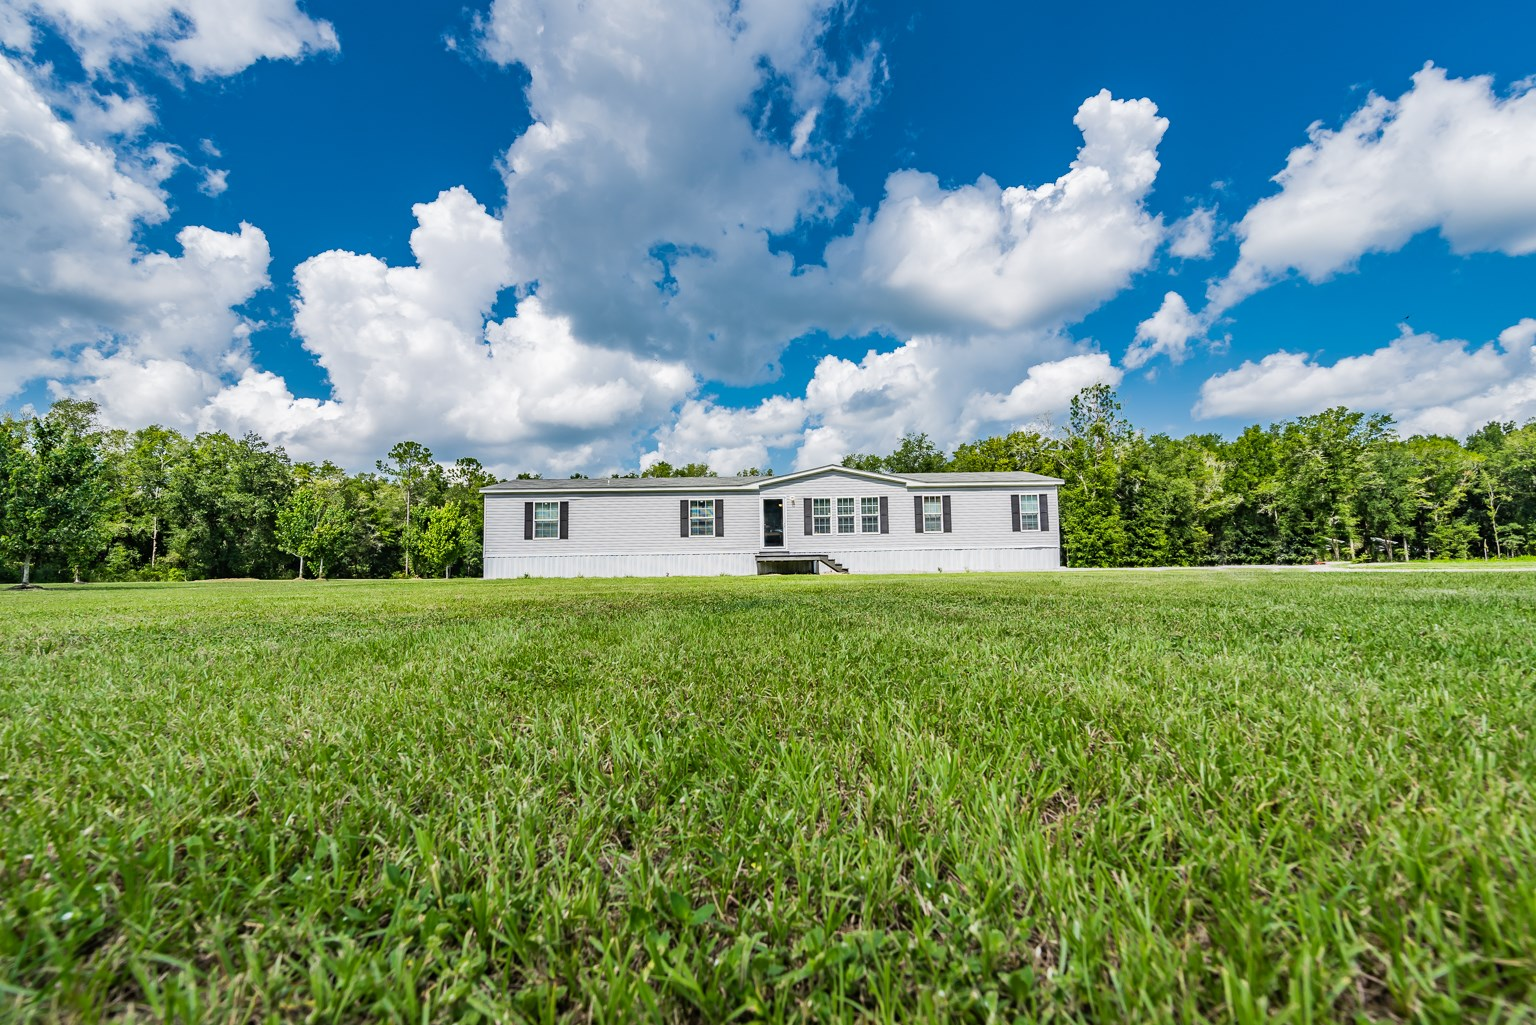 4BR/3BA IN THE HEART OF FORT WHITE, FL!